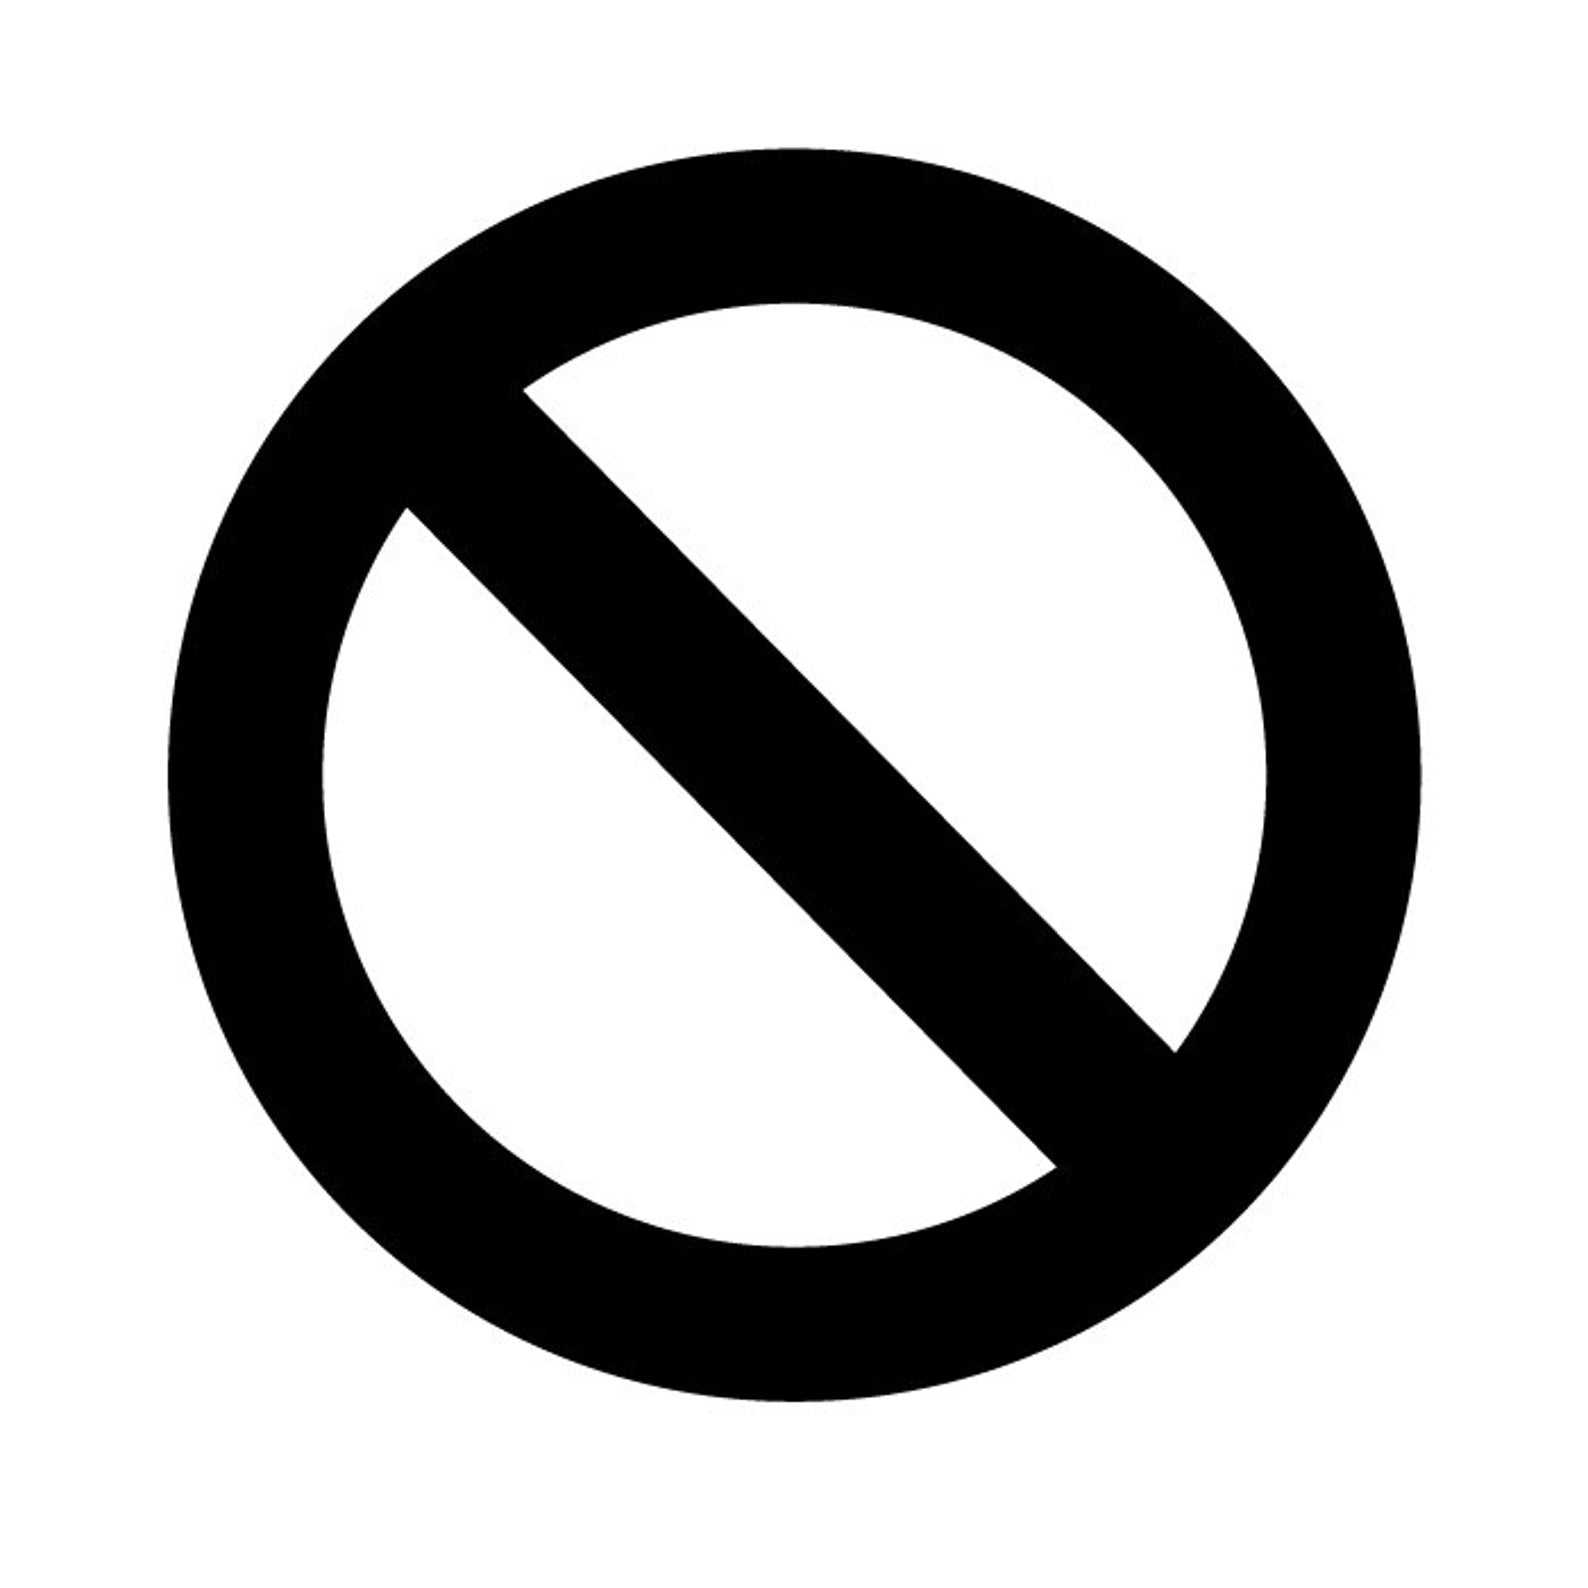 No No Circle Stop Cross Out Sign Logo Vinyl Decal Sticker - Choose Size & Color